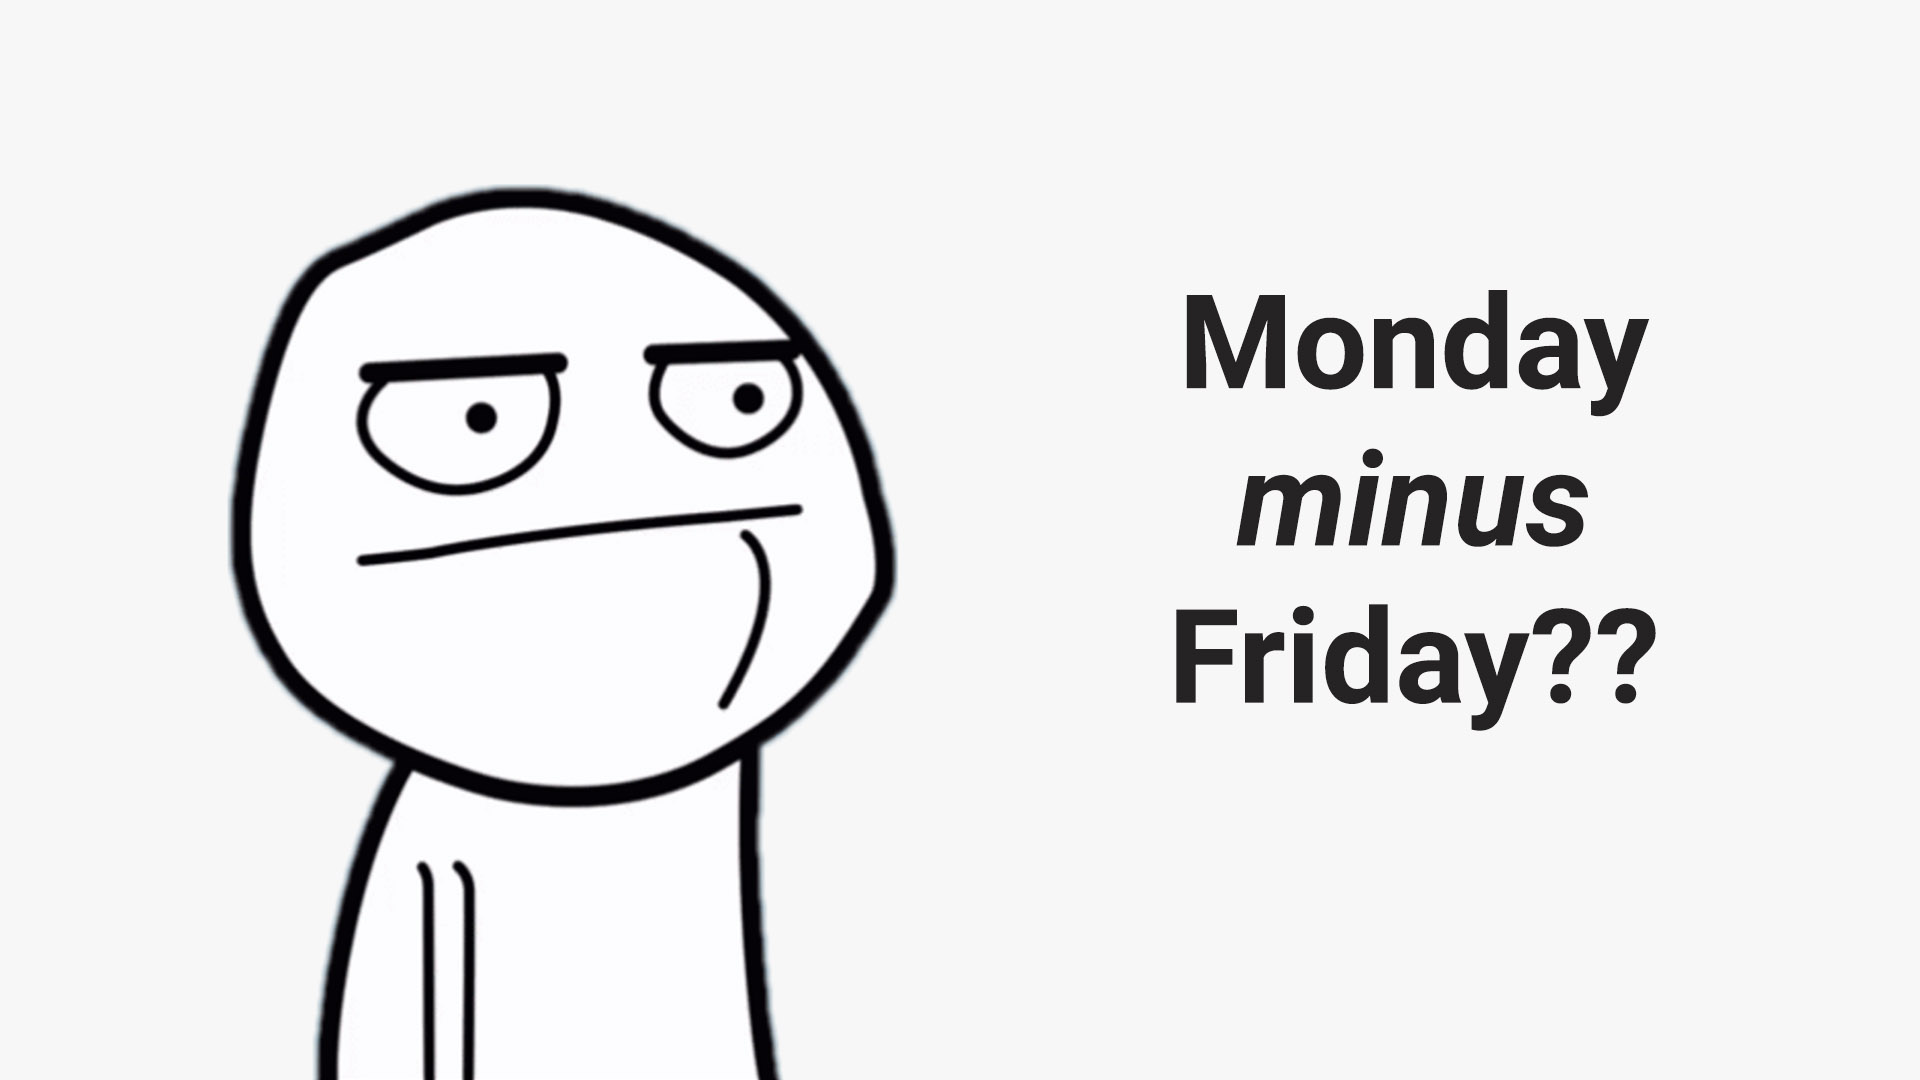 Monday minus Friday would be co sonfusing